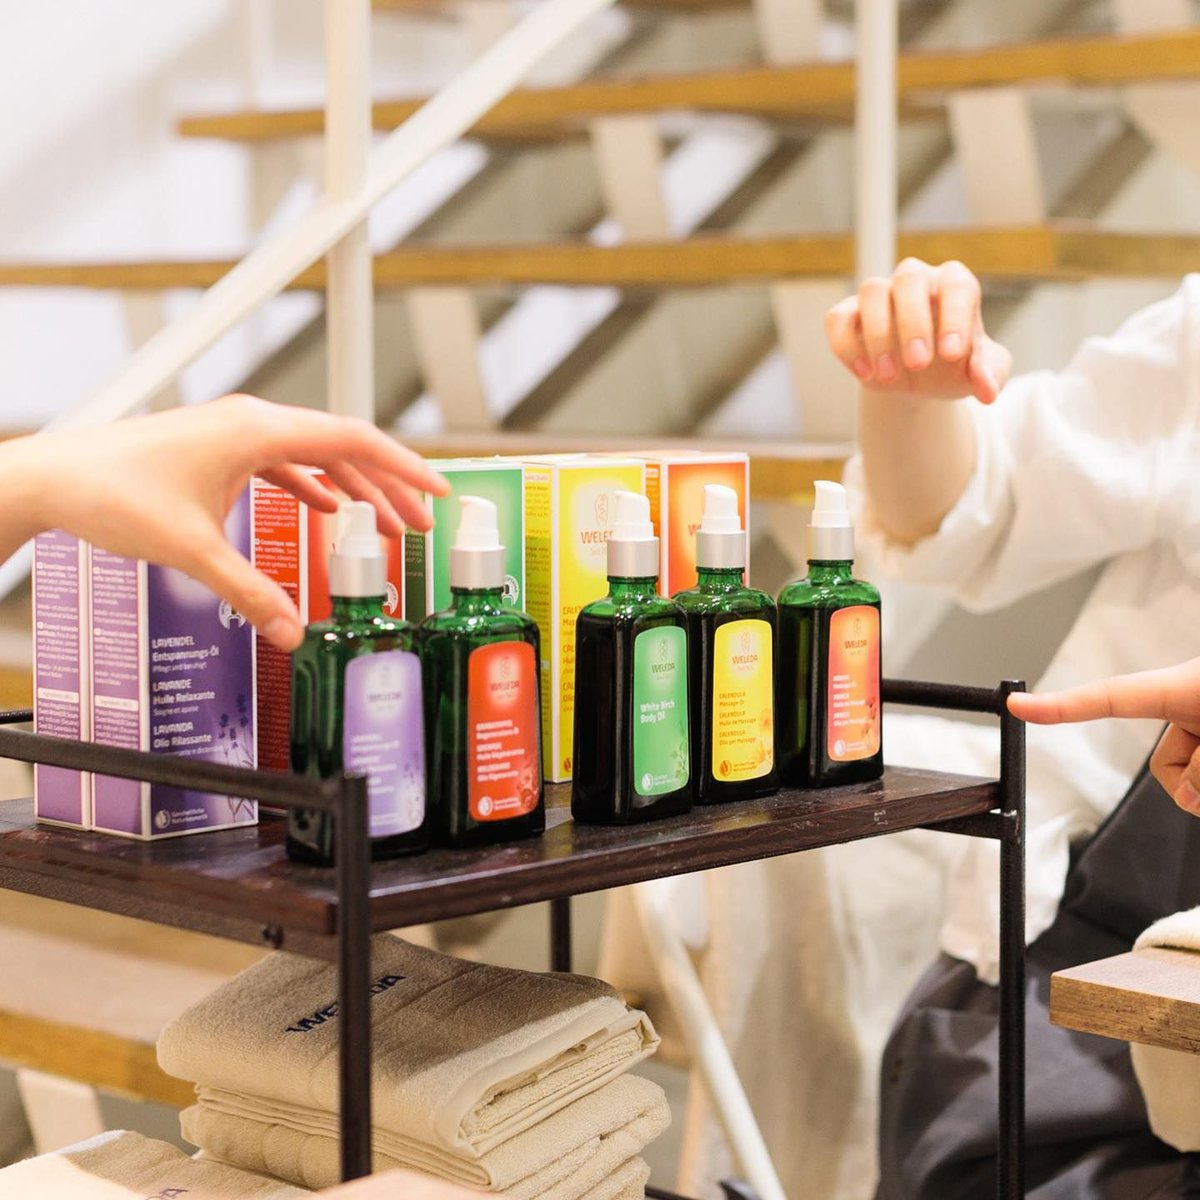 Its #WEEKEND! Select your desired Weleda Oil for a nice relaxing body massage :)  #weledaoils #weledauae #uae #uaepharmacy #almanarapharmacy #deltamedicalest #organic #nature #organicproducts #relax